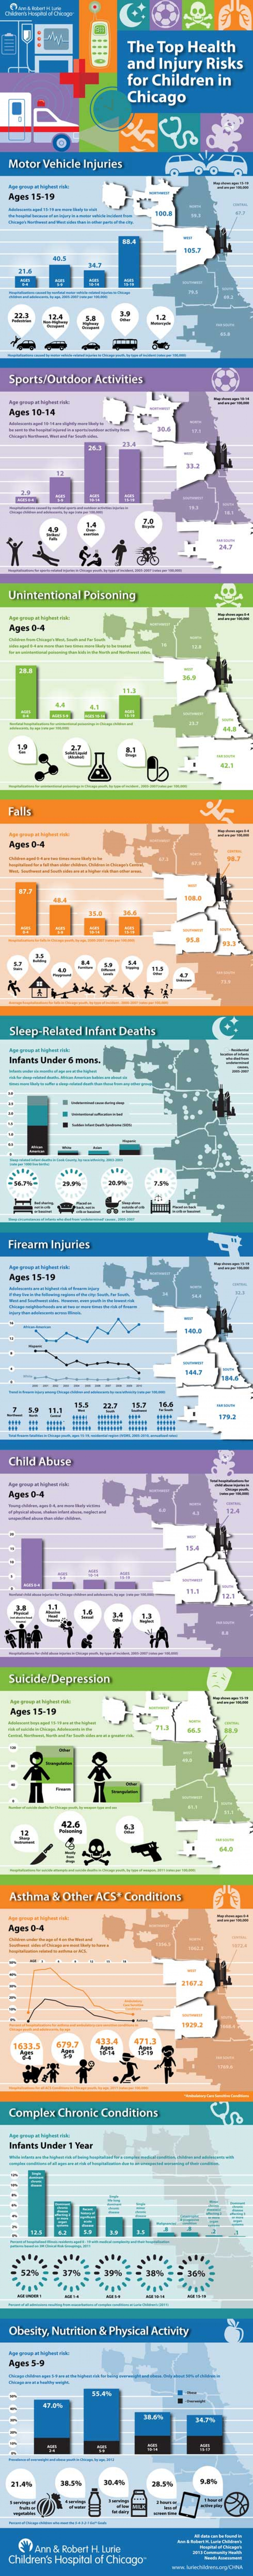 The Top Health & Injury Risks for Children in Chicago  Infographic